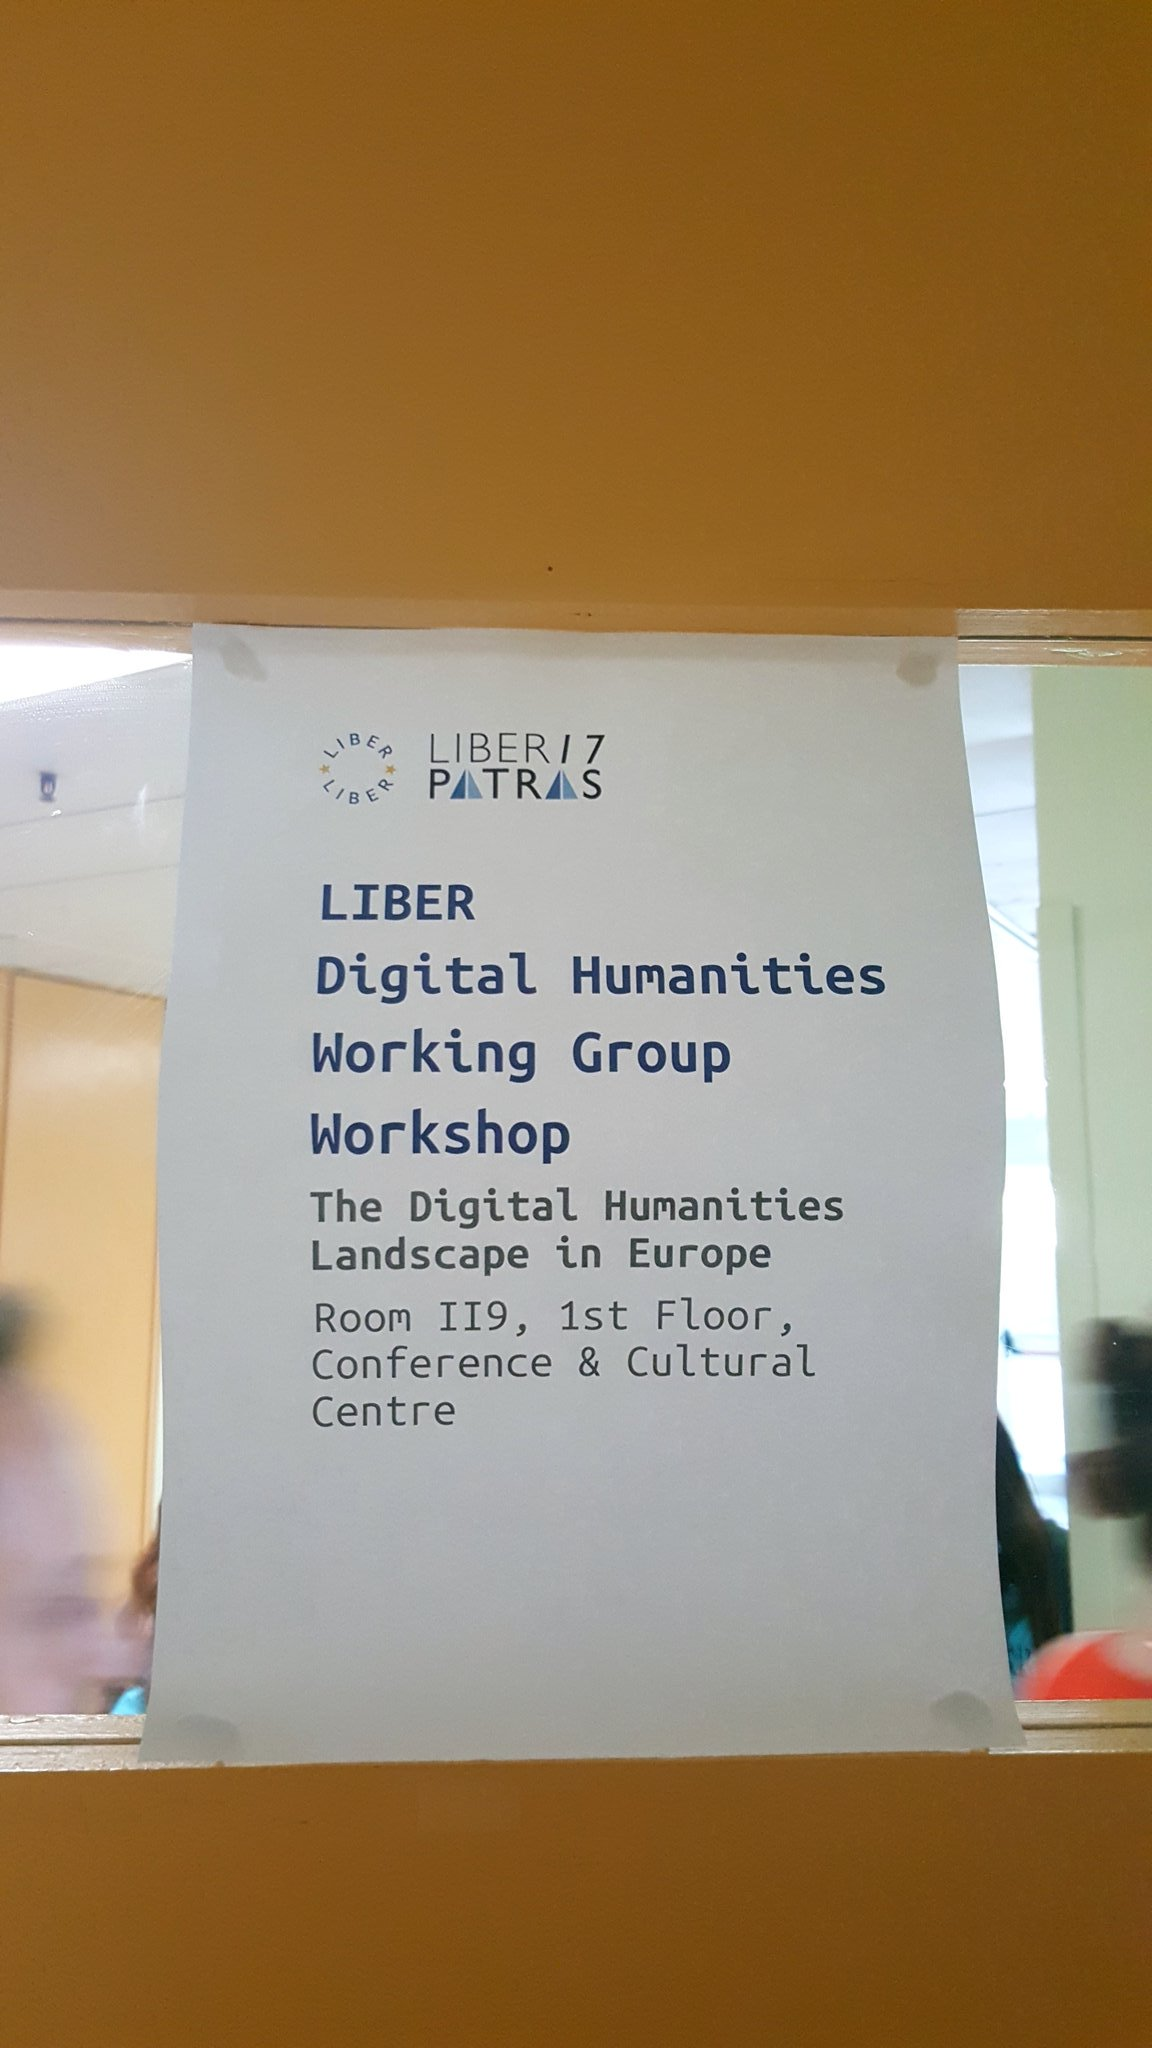 Waiting for the first meeting of the LIBER DH working group to start at #liber2017. Very excited to be here! https://t.co/7MoYIy6xnc